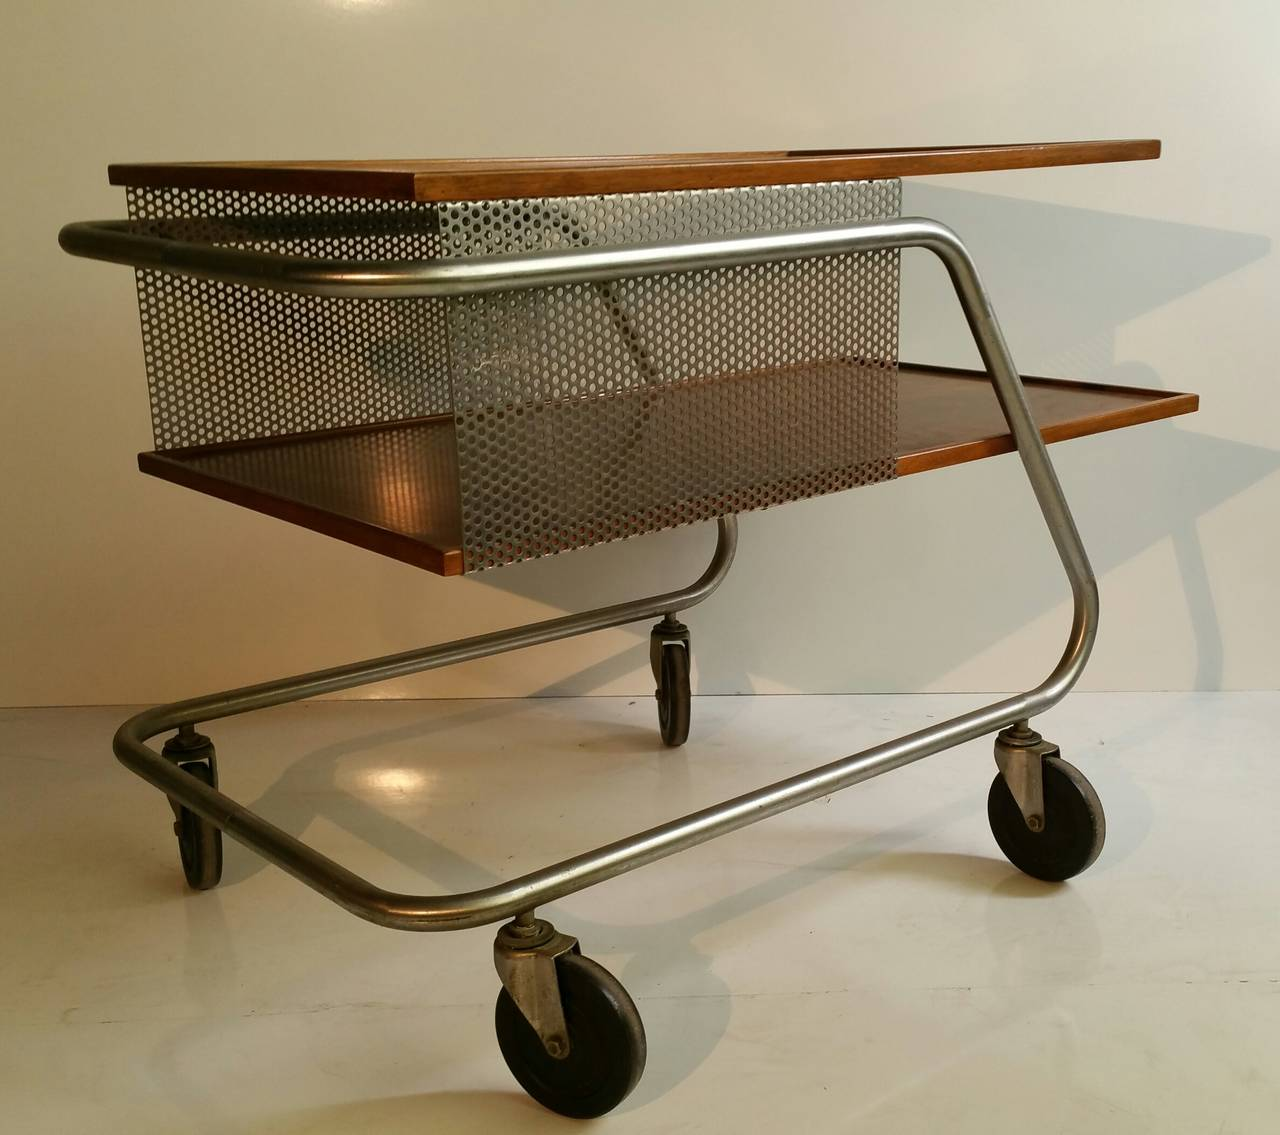 midcentury modern aluminum and wood industrial trolly bar cart  - midcentury modern aluminum and wood industrial trolly bar cart